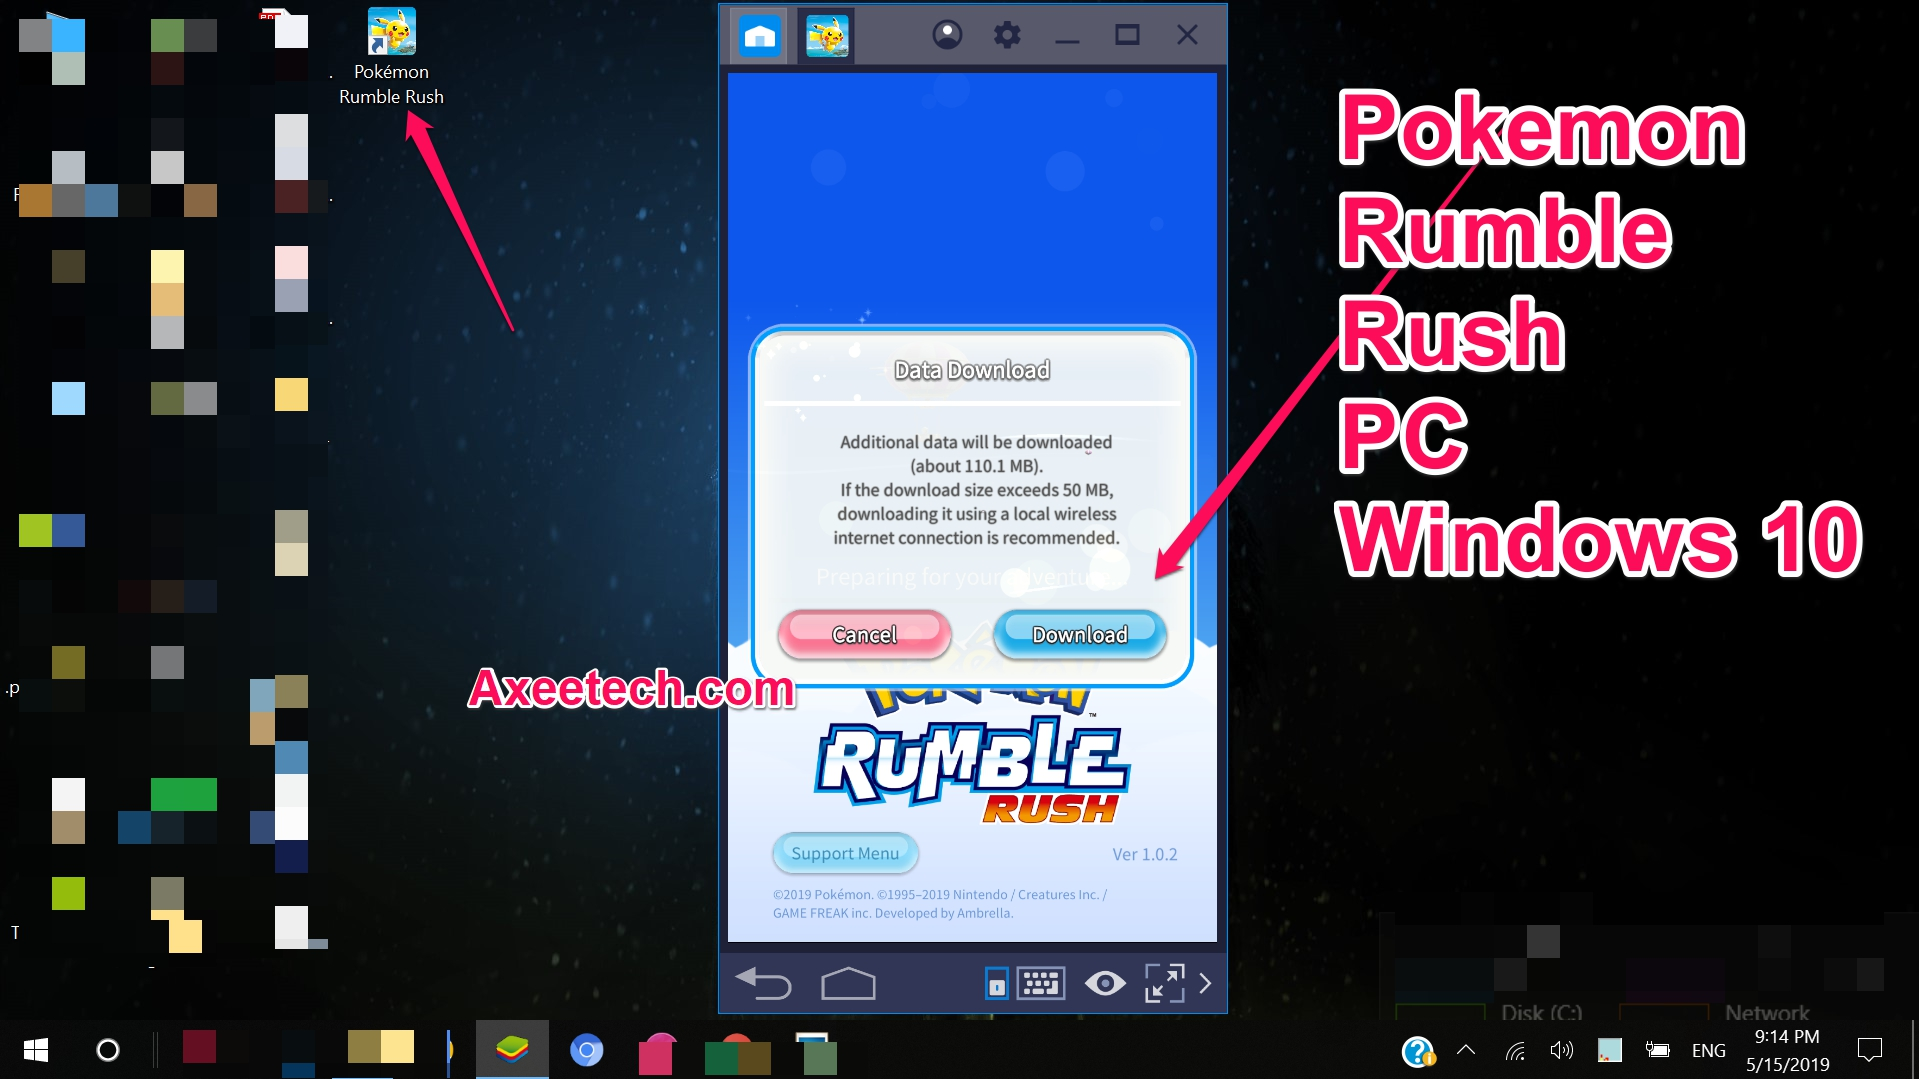 Download Pokemon Rumble Rush for PC Windows 10  | AxeeTech